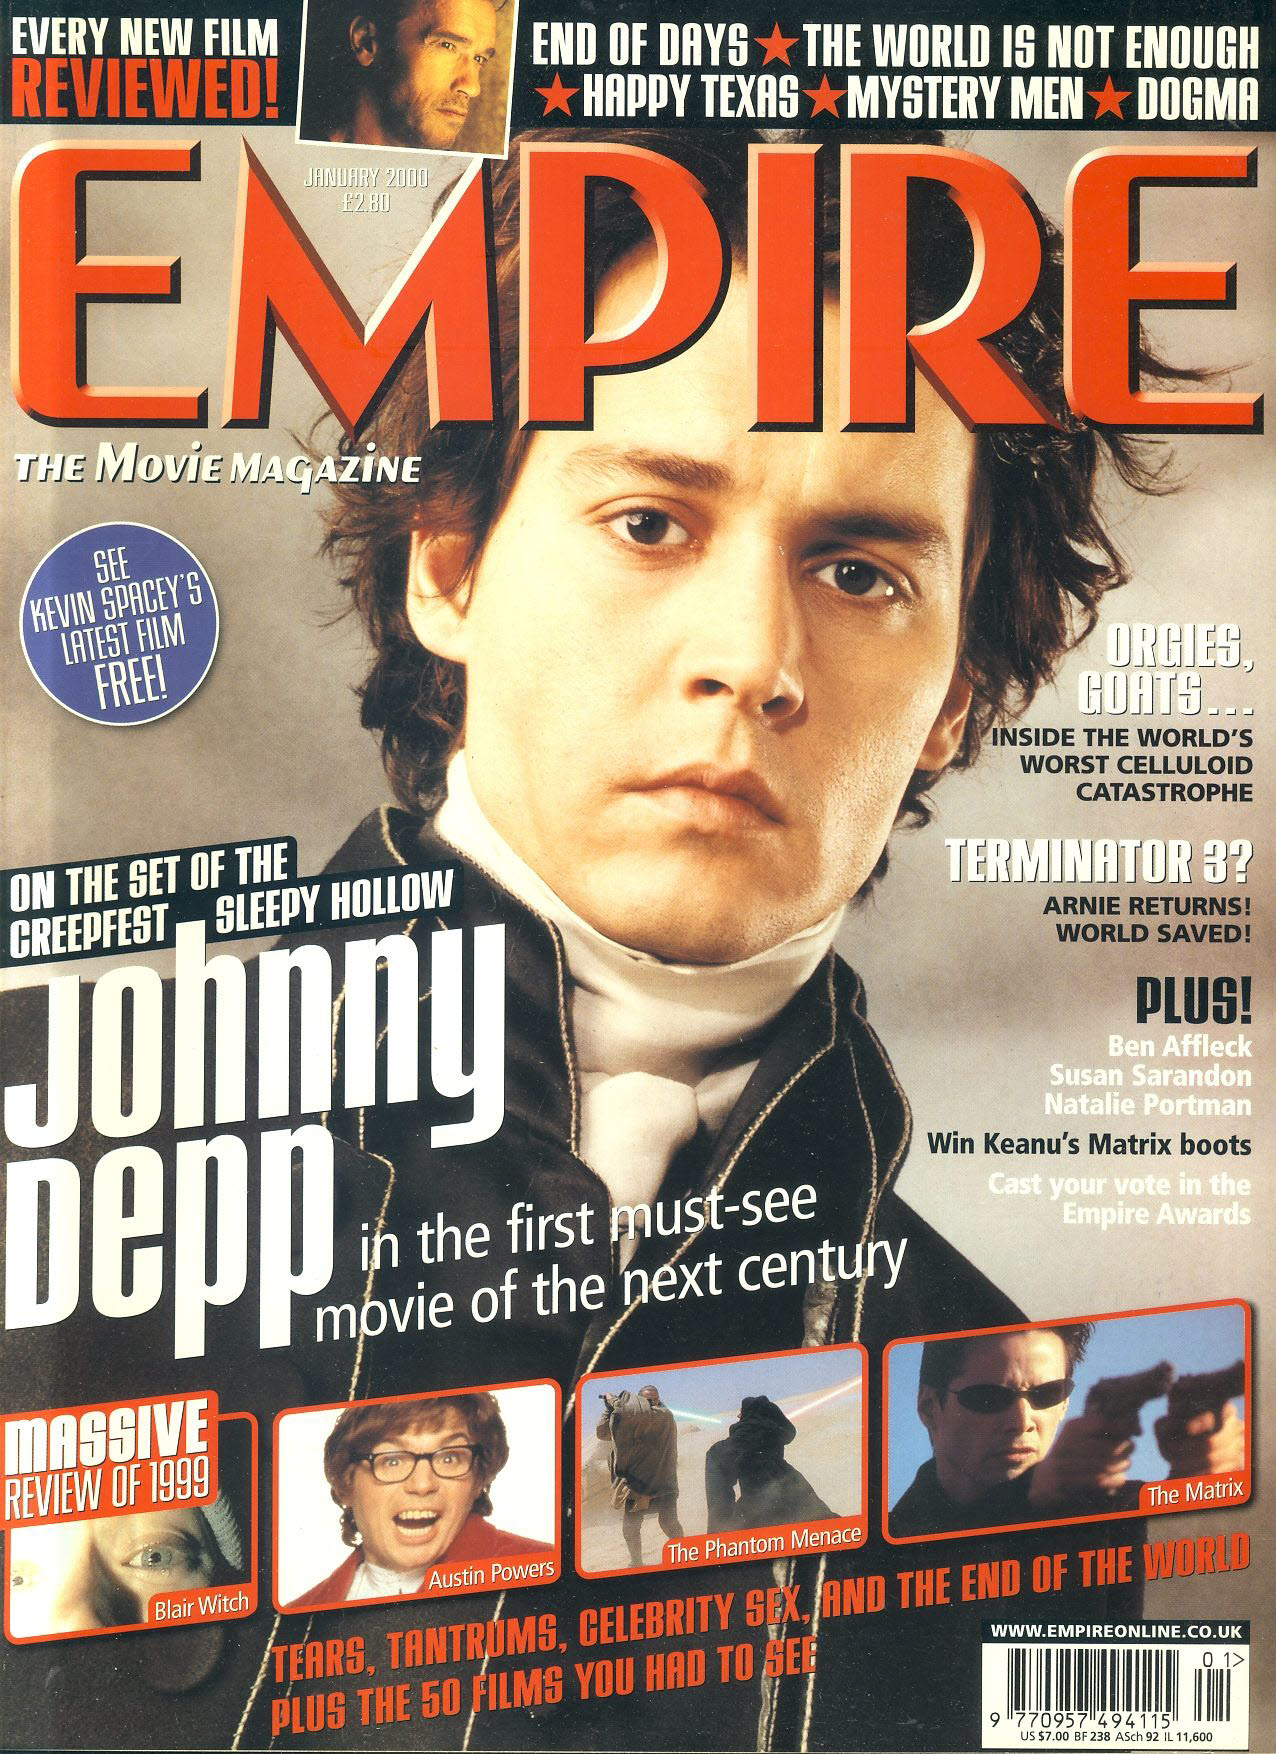 EMPIRE magazine JAN 2000 Johnny Depp SLEEPY HOLLOW ref100194 Pre-owned in very good clean condition. Please see larger photo and full description for details.